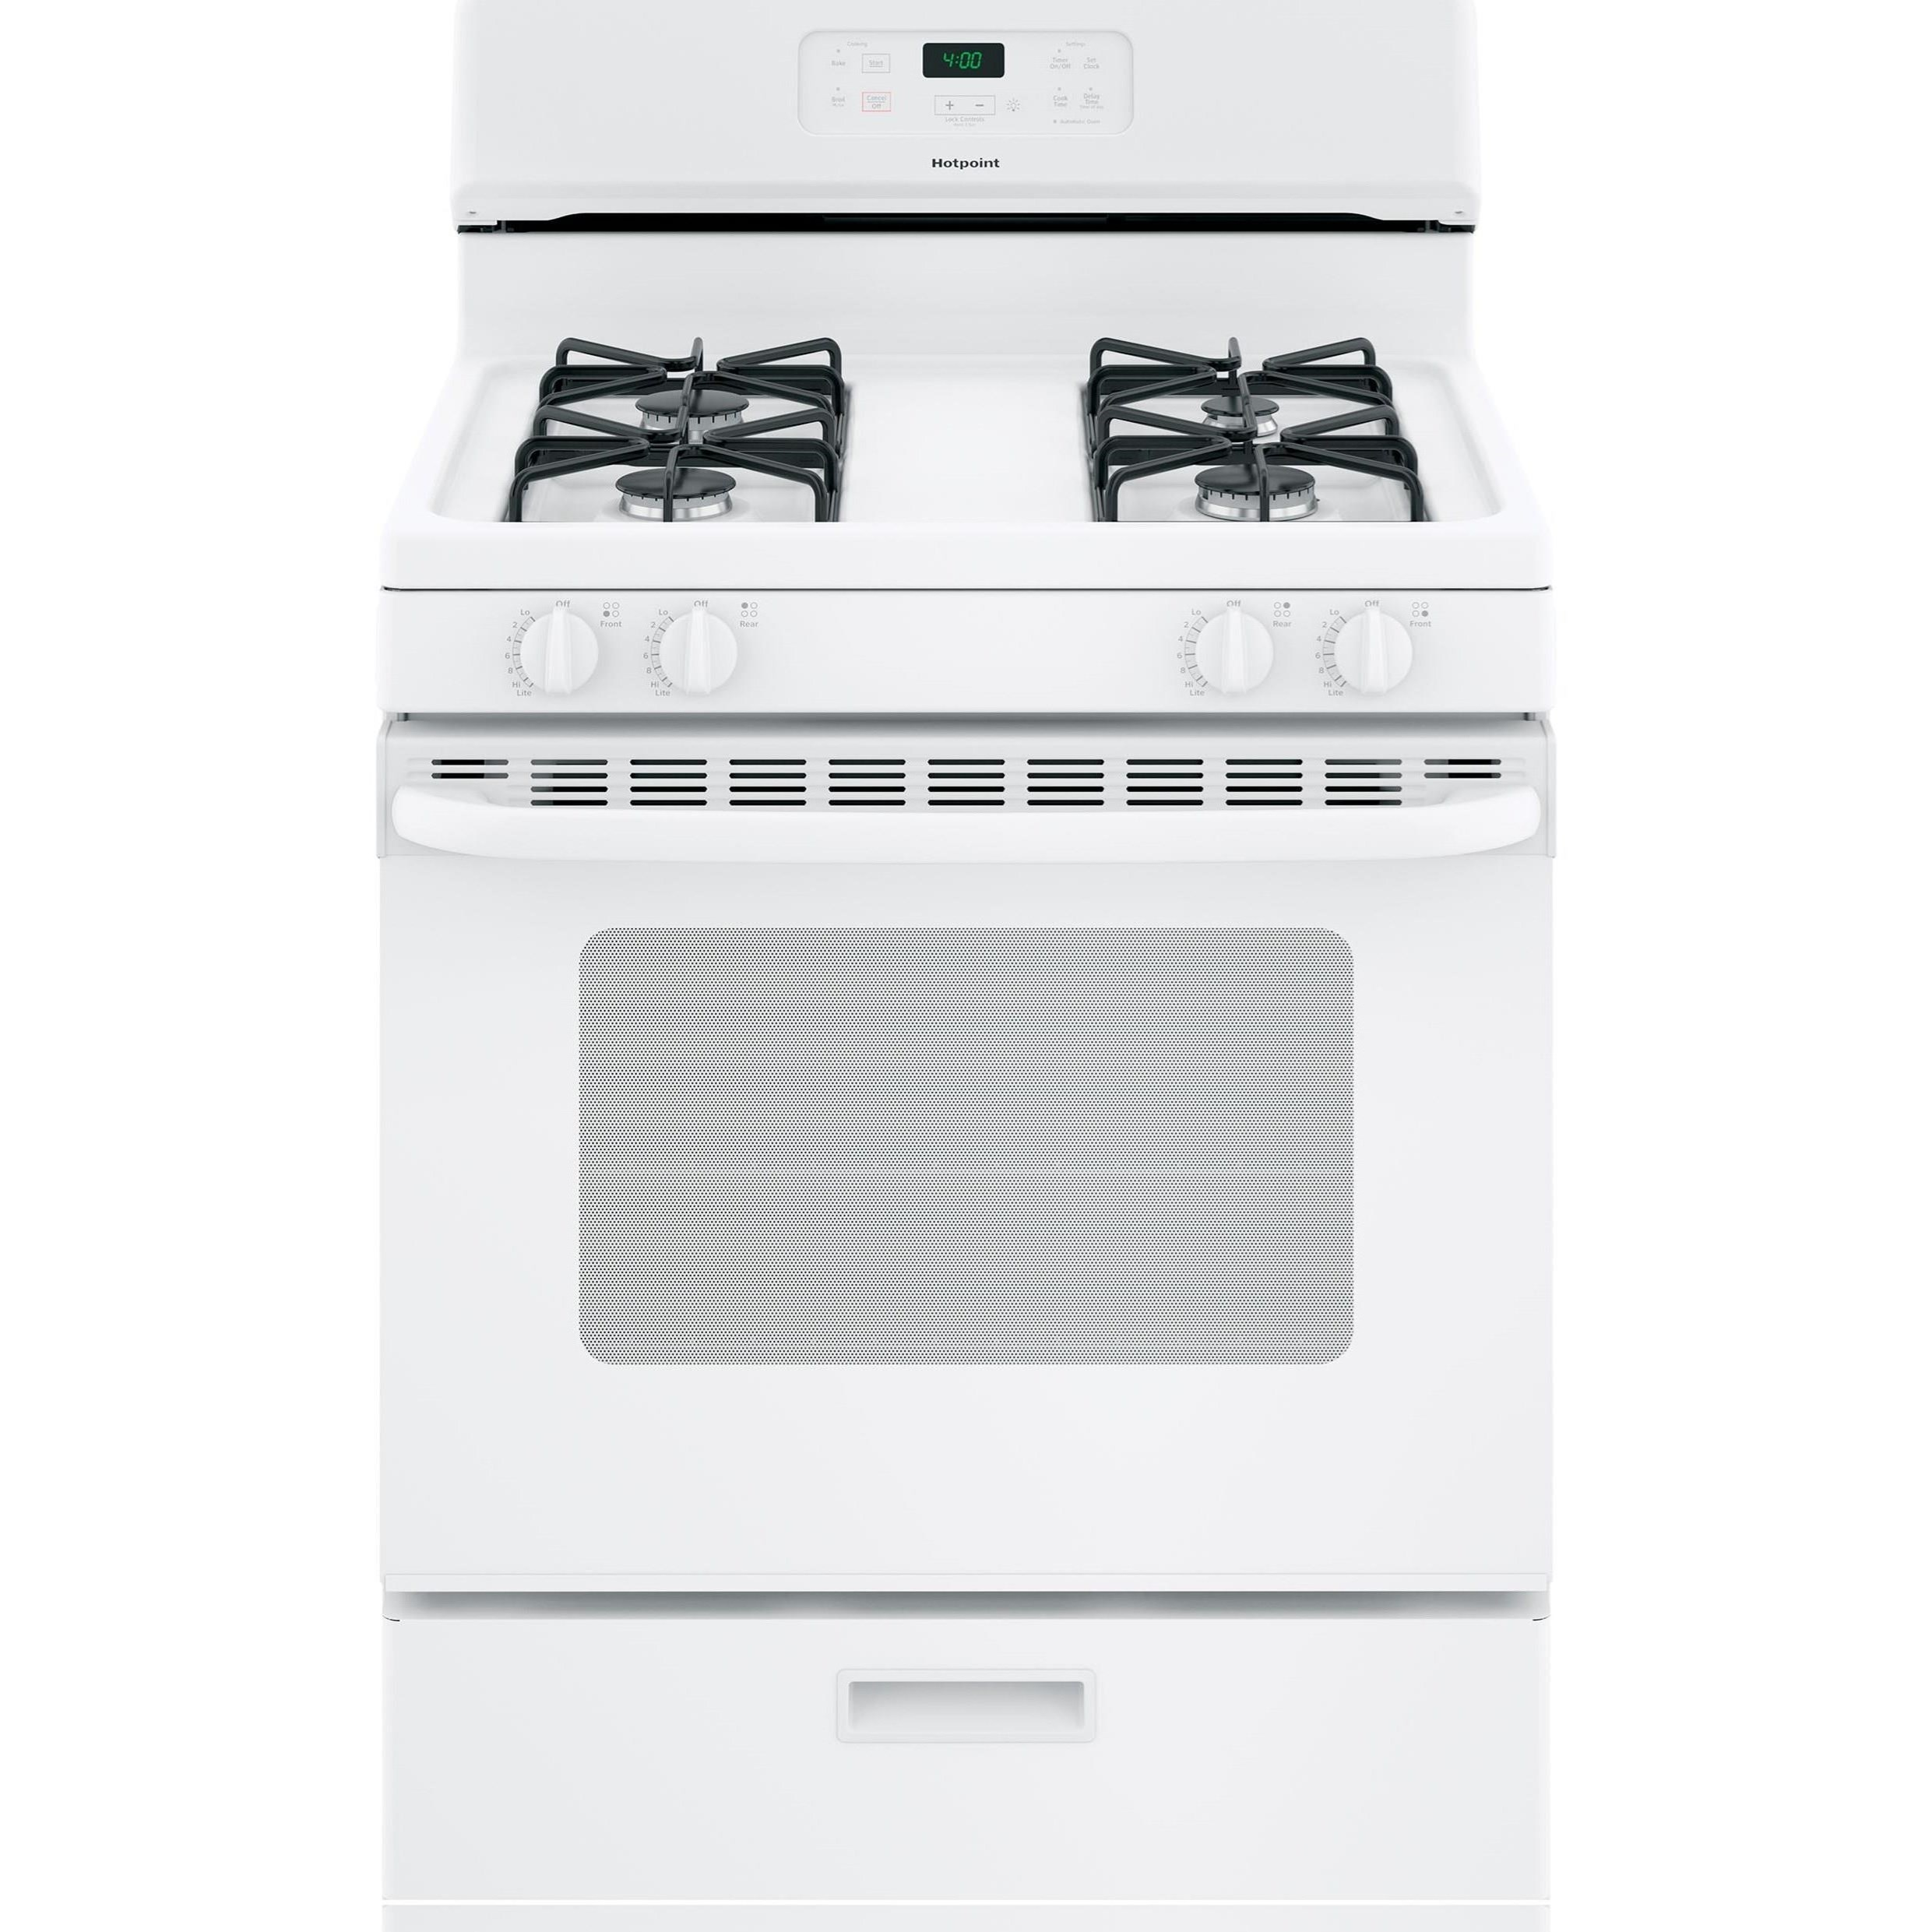 "Hotpoint Range Hotpoint® 30"" Free-Standing Gas Range by GE Appliances at VanDrie Home Furnishings"